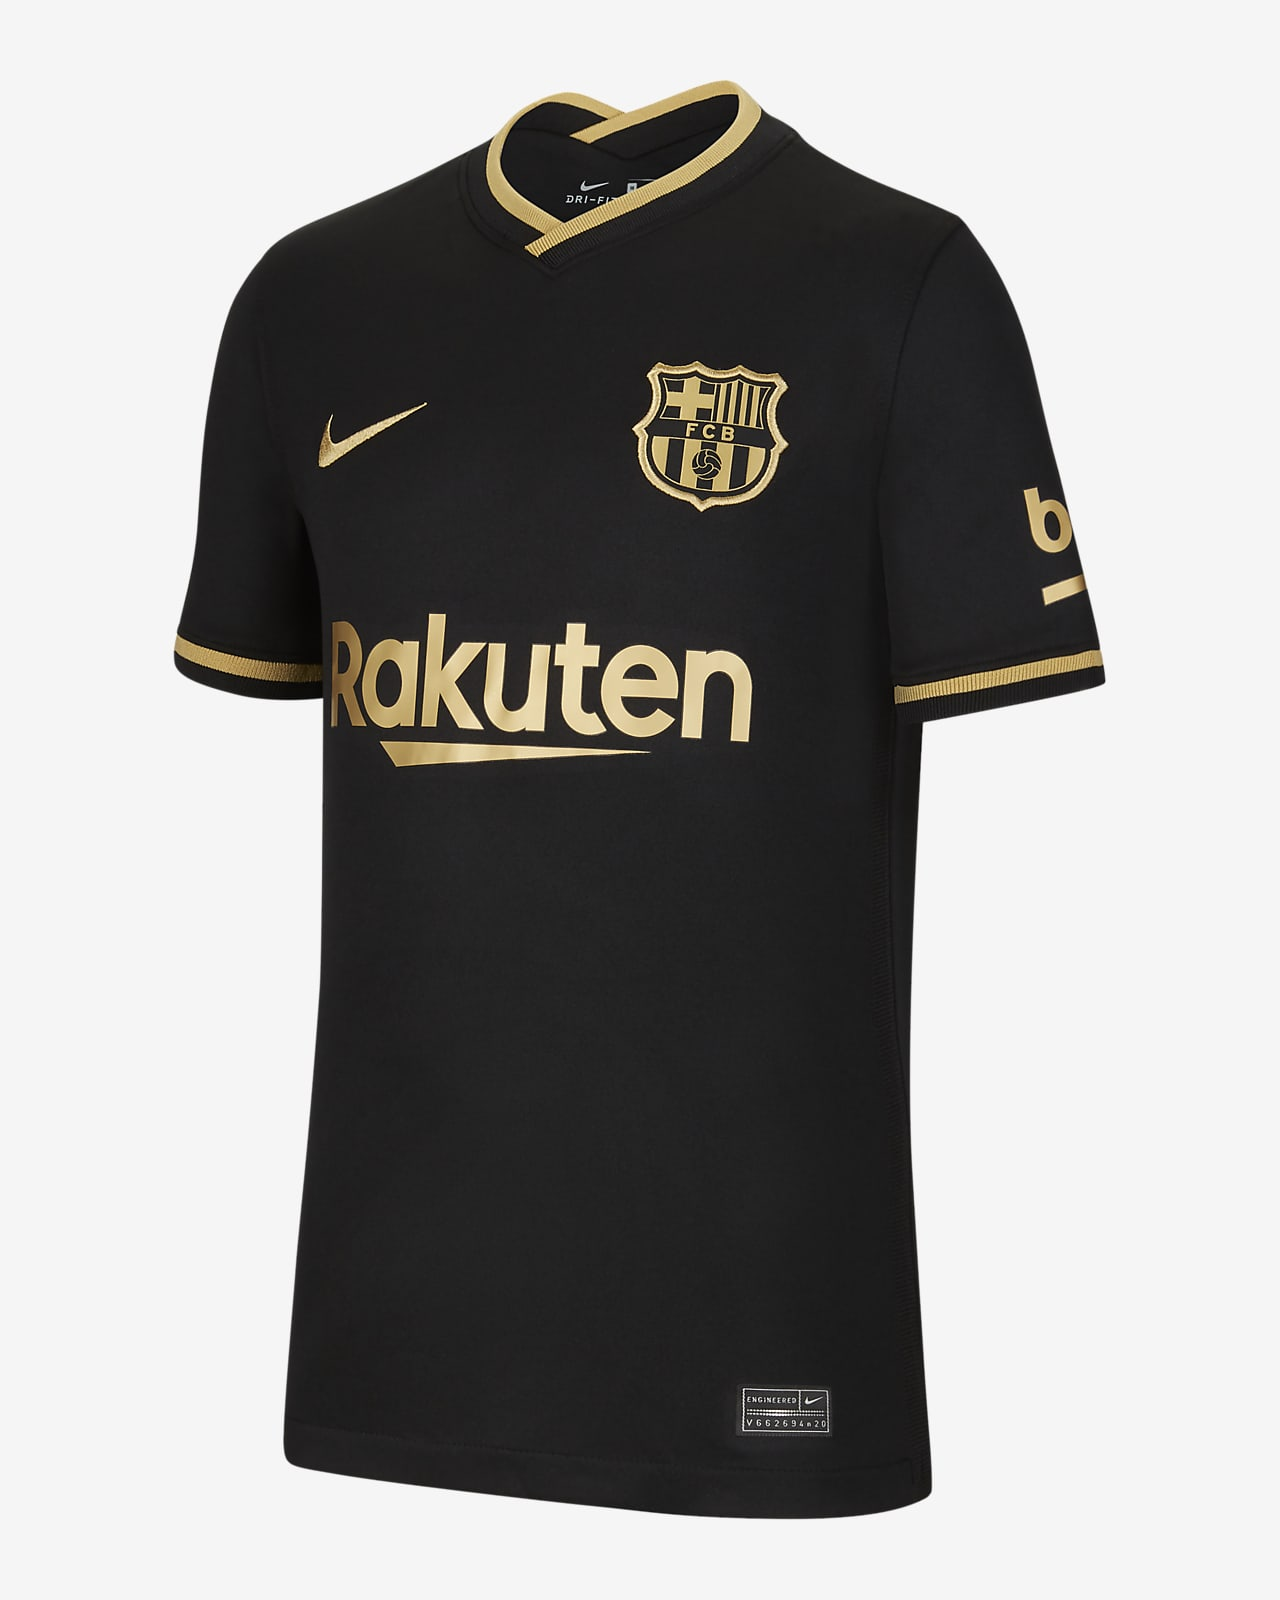 fc barcelona 2020 21 stadium away big kids soccer jersey nike com fc barcelona 2020 21 stadium away big kids soccer jersey